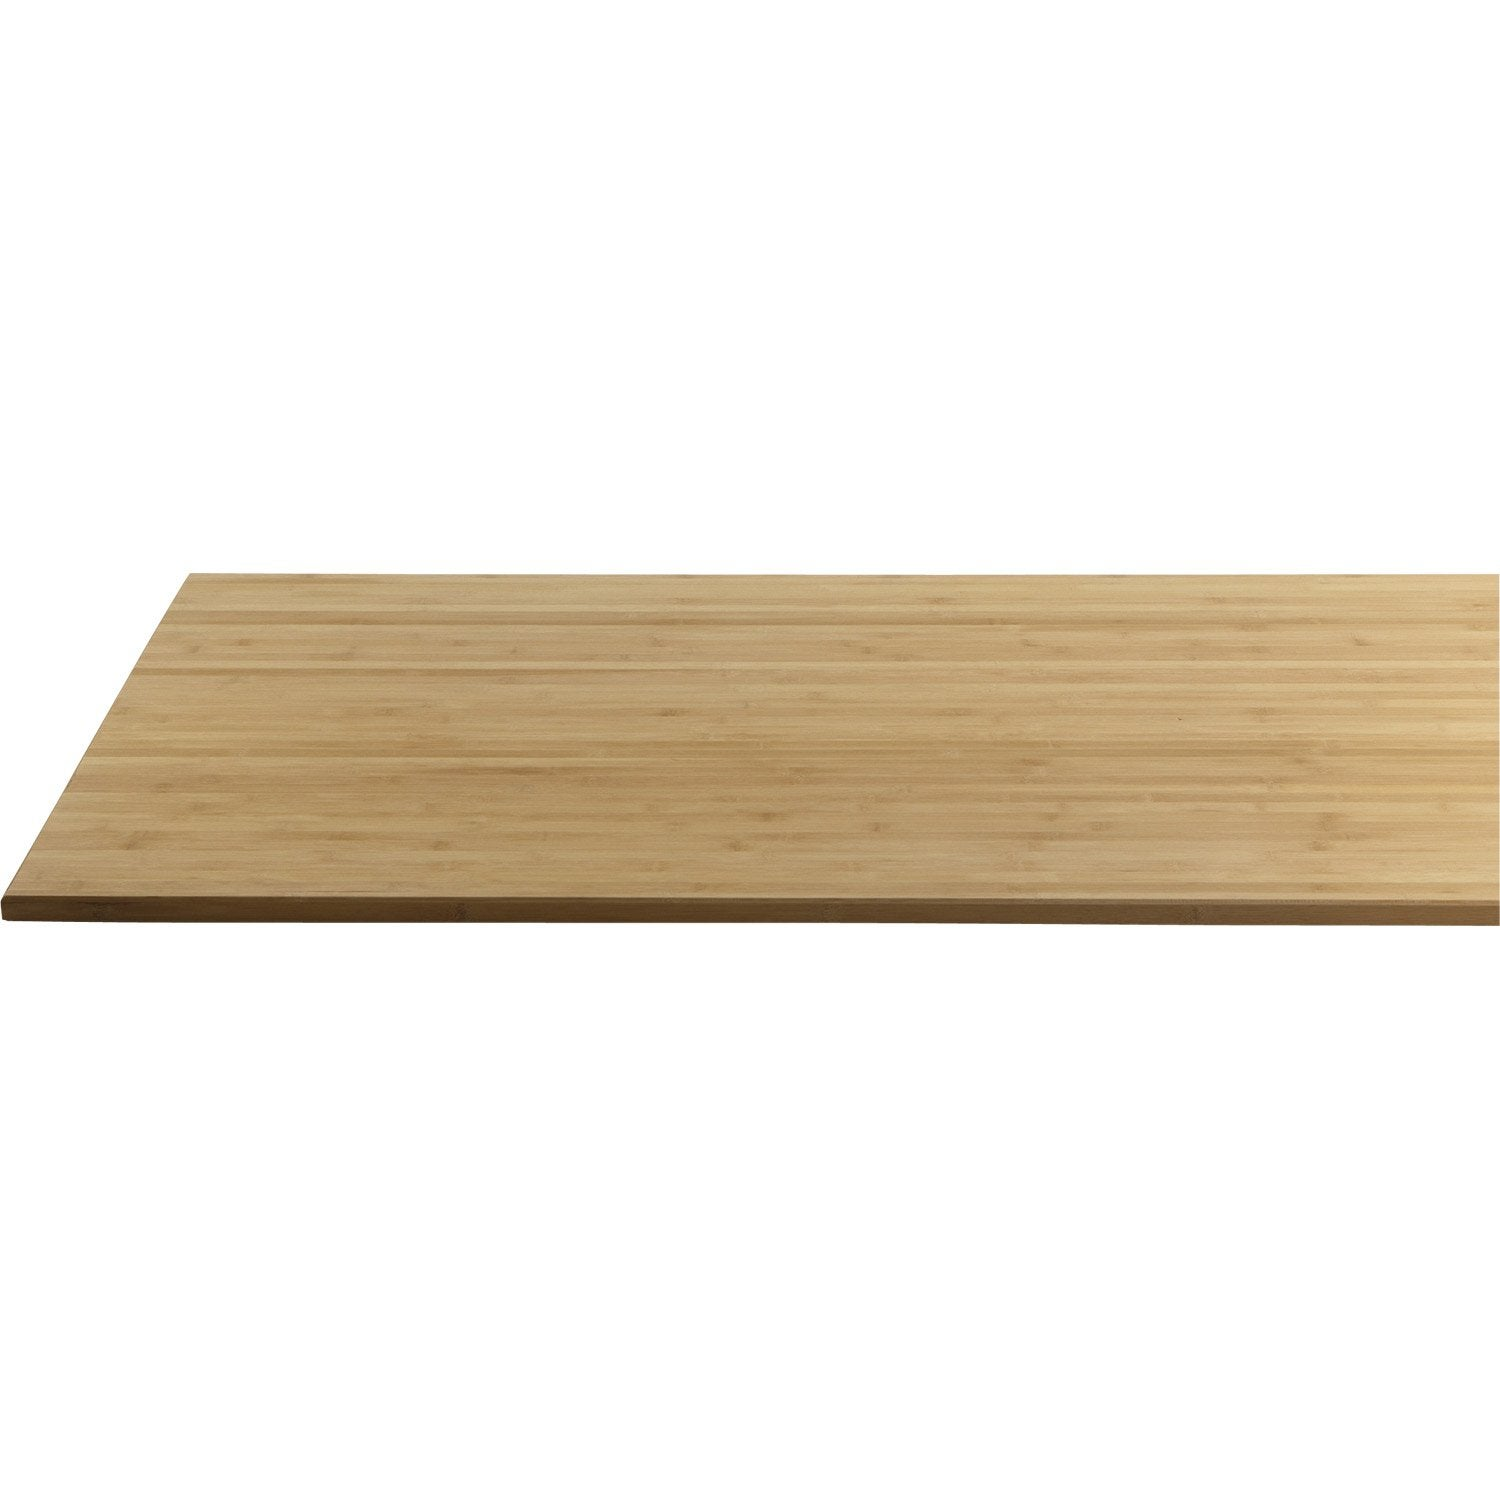 Plateau de table bambou x cm x mm for Bureau 50 cm de longueur